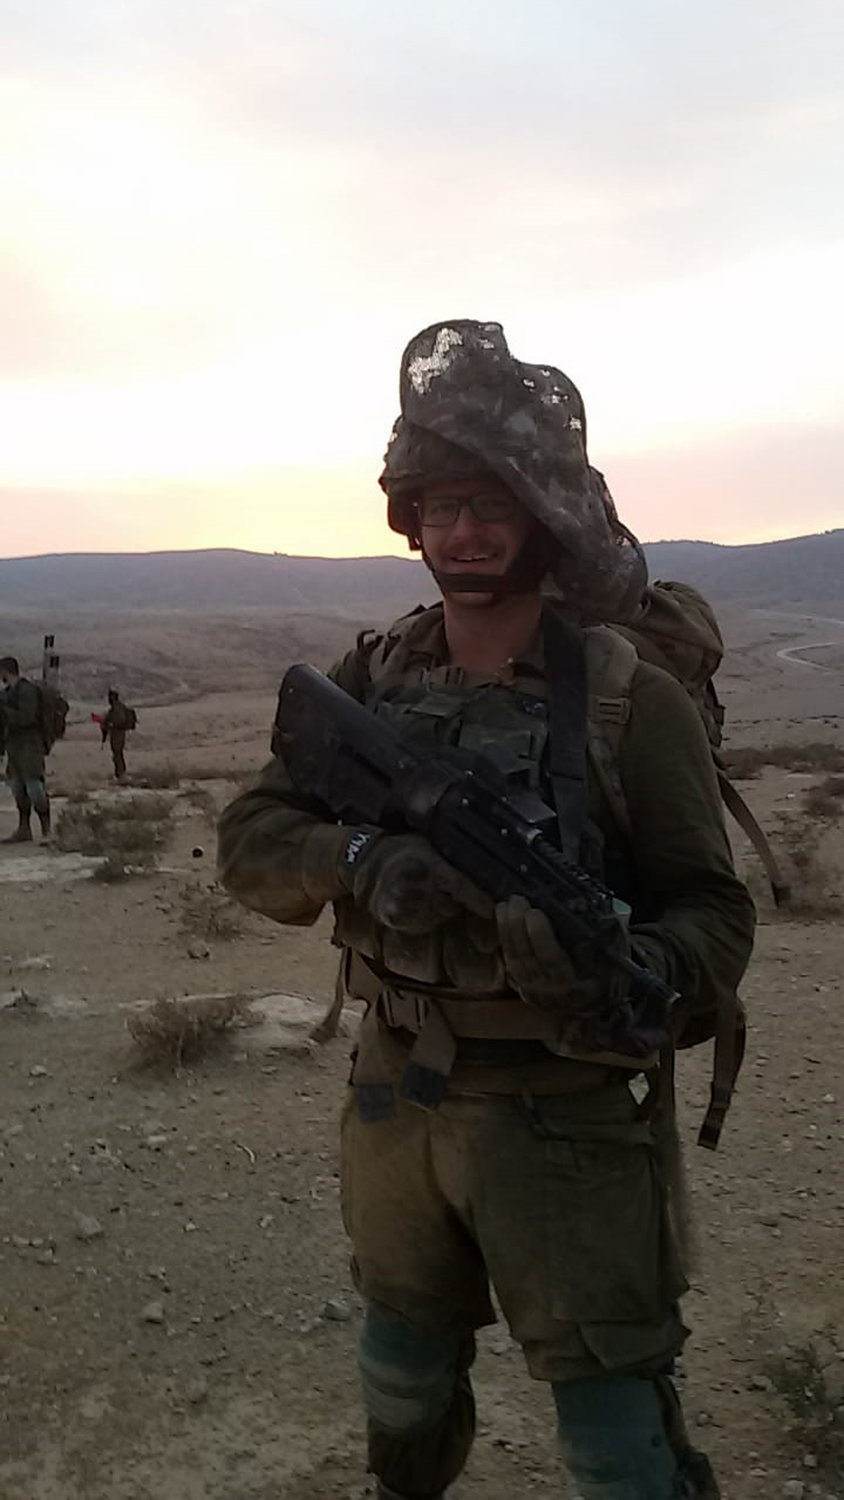 He currently serves as an infantryman in the 932nd battalion of the IDF's Nahal Brigade.